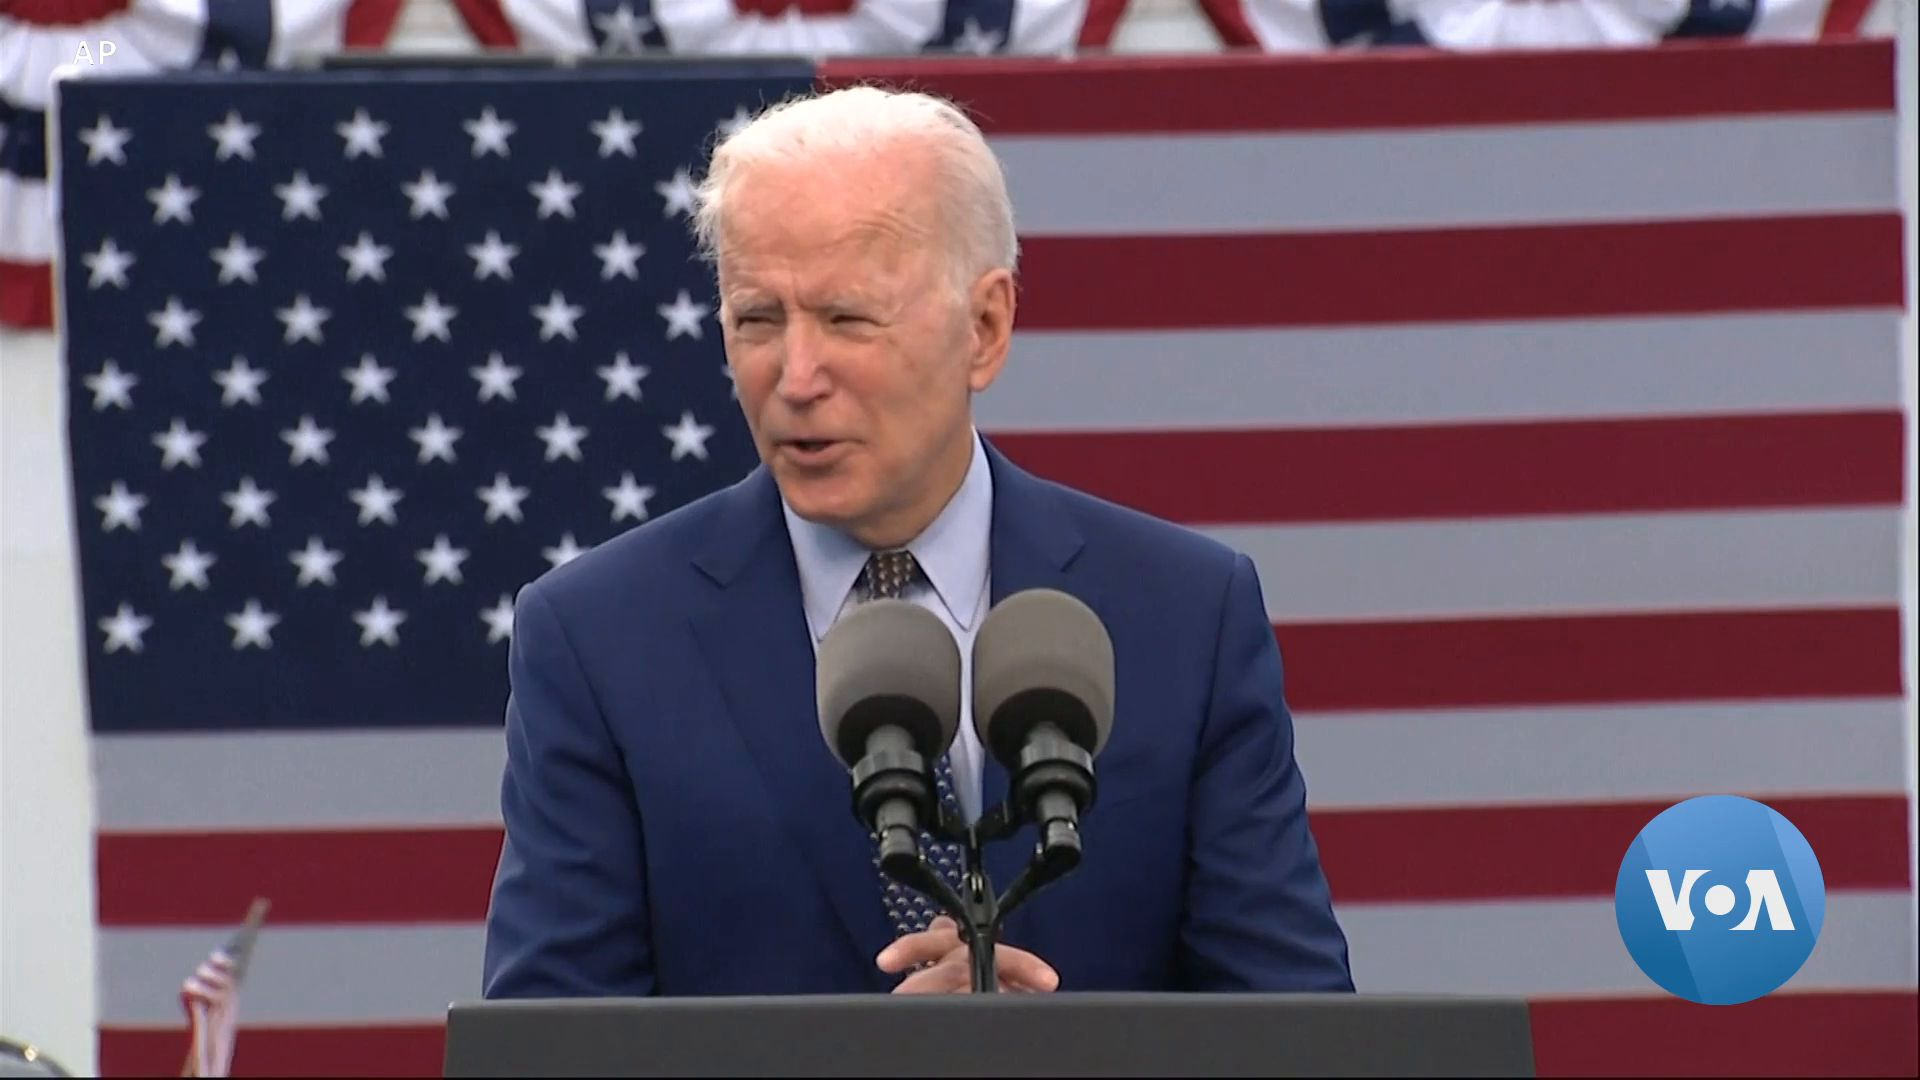 Biden Travels to Georgia, a State that Secured His Legislative Ambitions